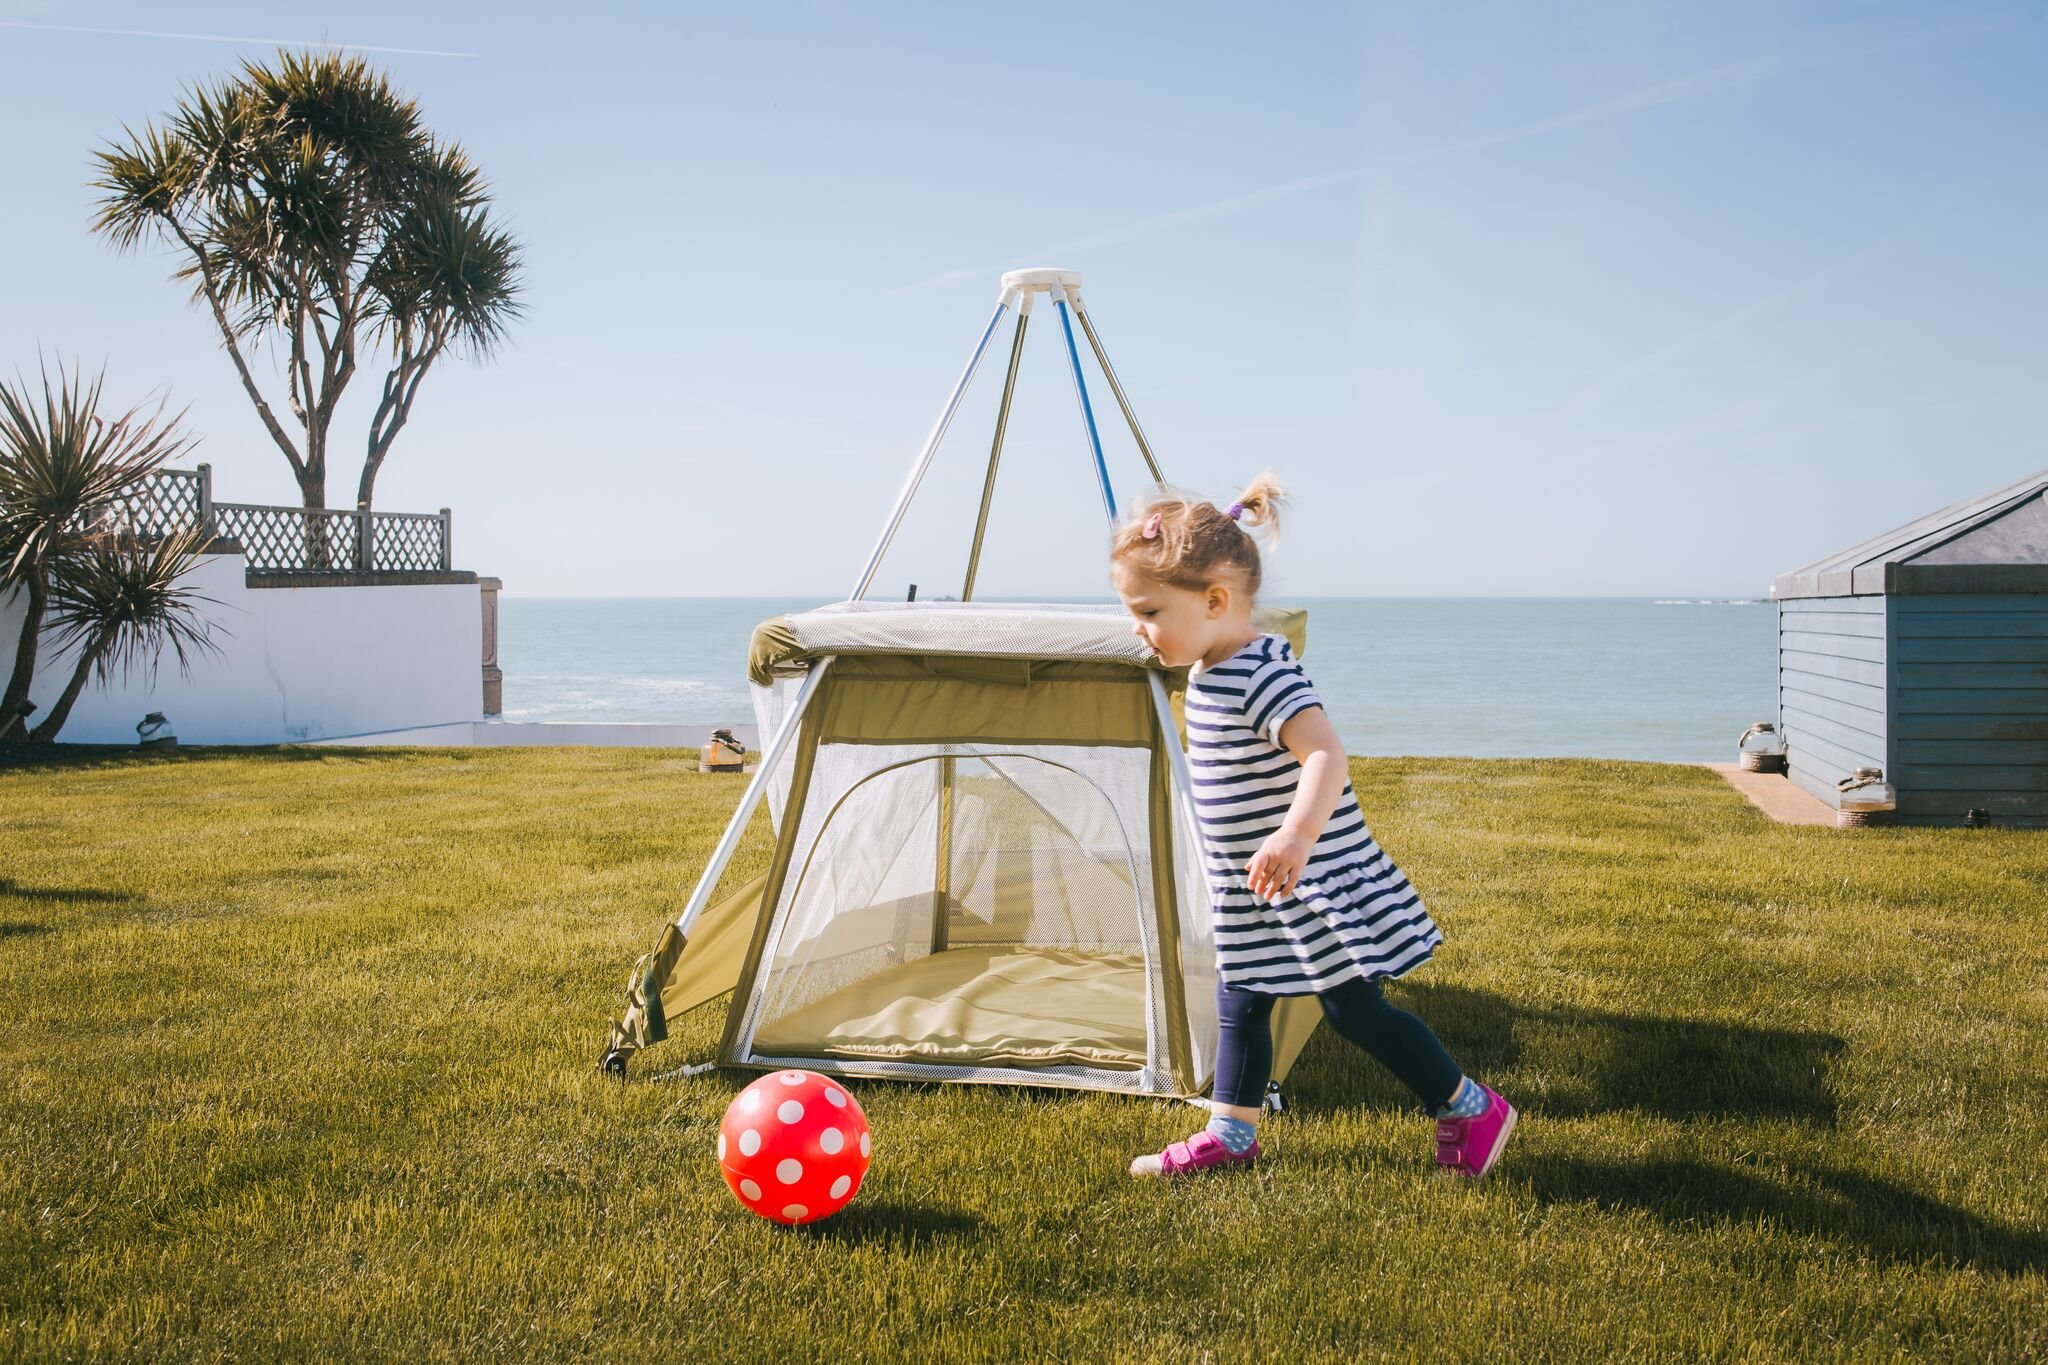 BabyHub SleepSpace Travel Cot with Mosquito Net, Green BabyHub Three cots in one; use as a travel cot, mosquito proof space and reuse as a play tepee Includes cotton canvas tepee cover Can be set up and moved even while holding a baby. Dimensions Open - L 116cm x W 960cm x H 122cm (when opened). Dimensions Closed - 83cm H x 22cm x 42cm (in bag) 6